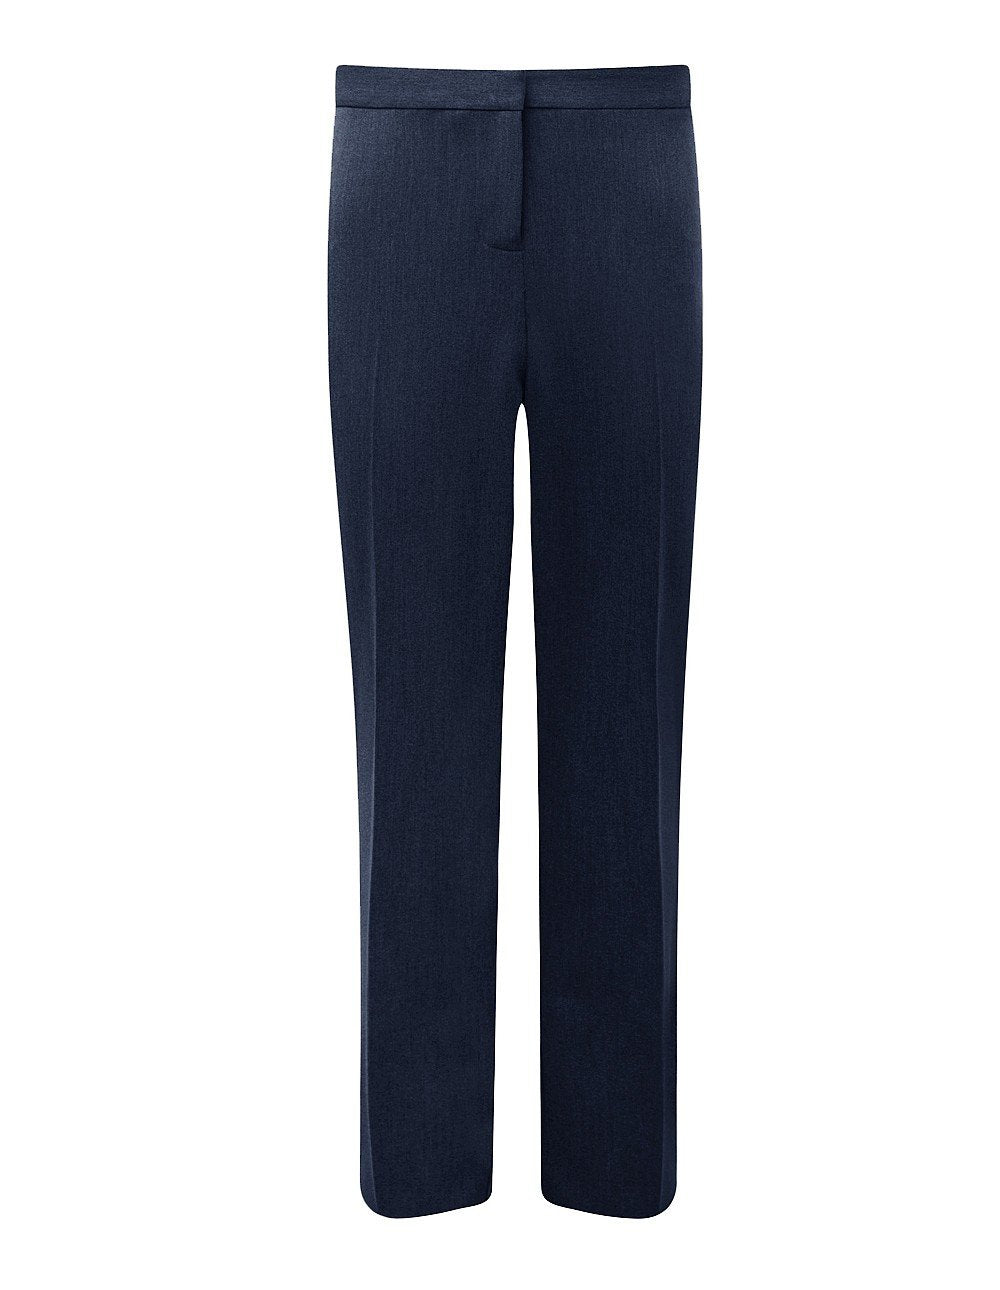 "Trimley Girls Slim-fit Trousers (available in Black, Navy & Mid-Grey colours) Navy / 38"" Waist 33 Length School Uniform Centres Trousers school-uniform-centres.myshopify.com Schoolwear Centres"